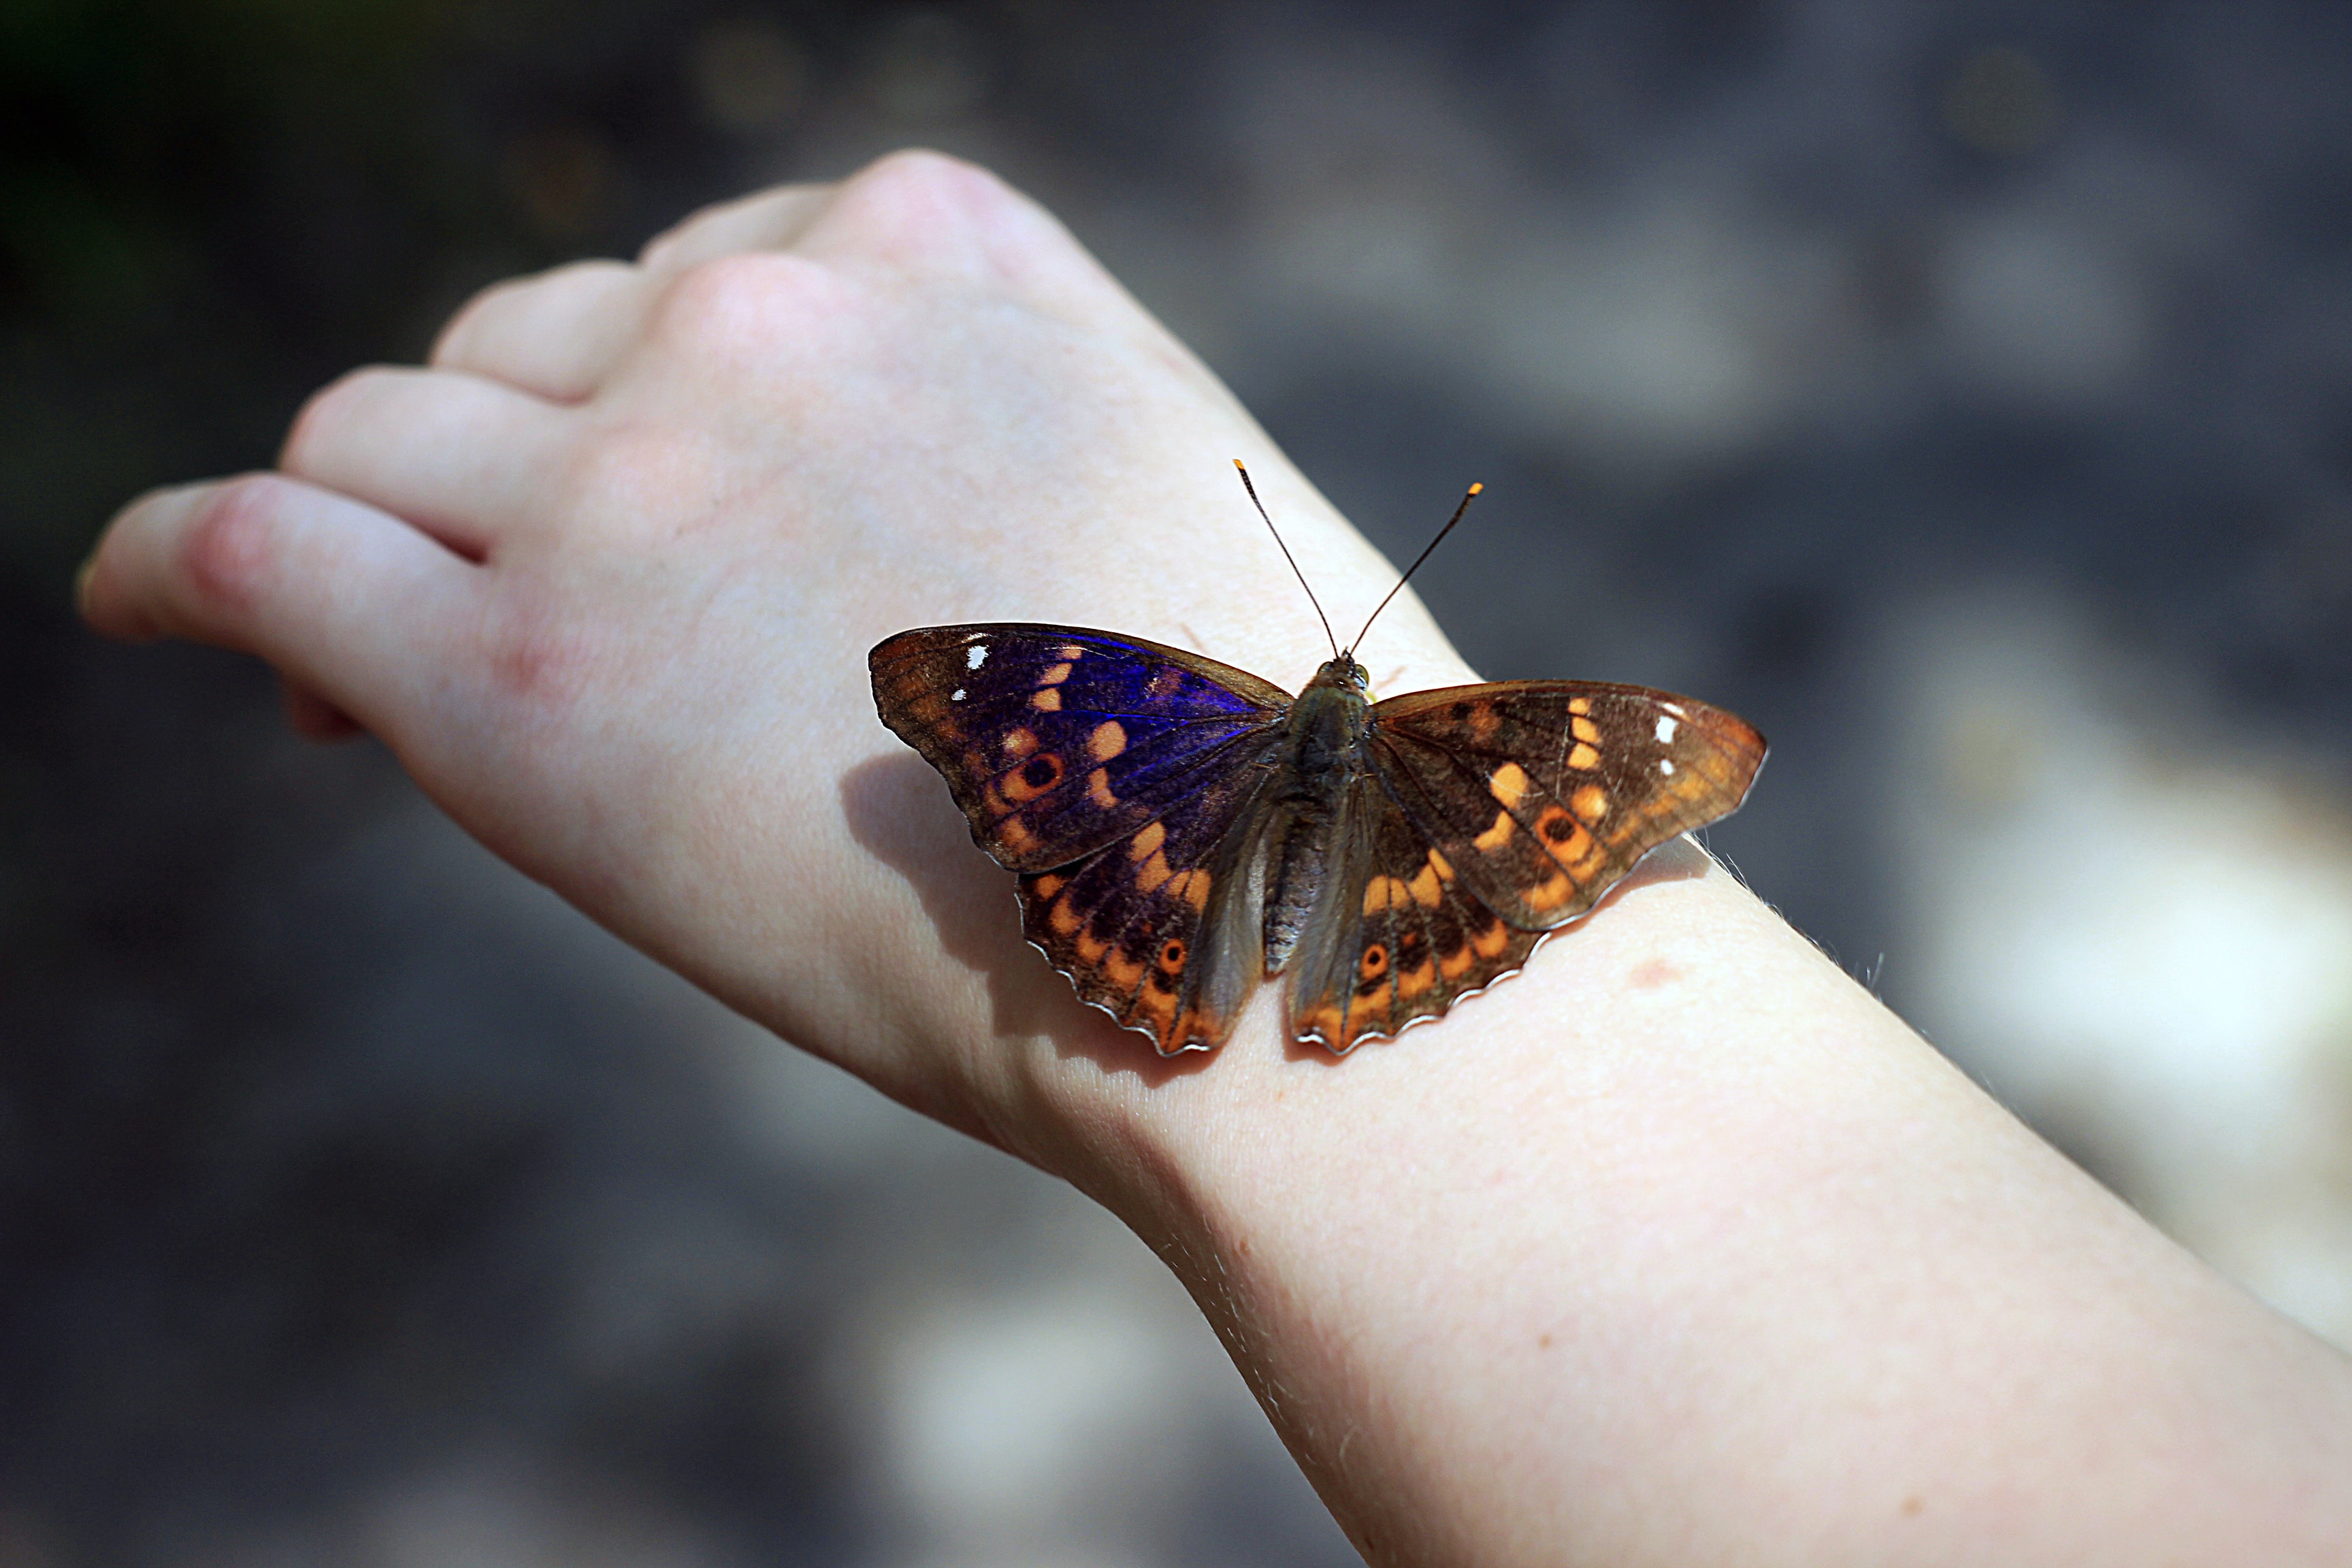 shallow focus photo of brown butterfly on person's hand